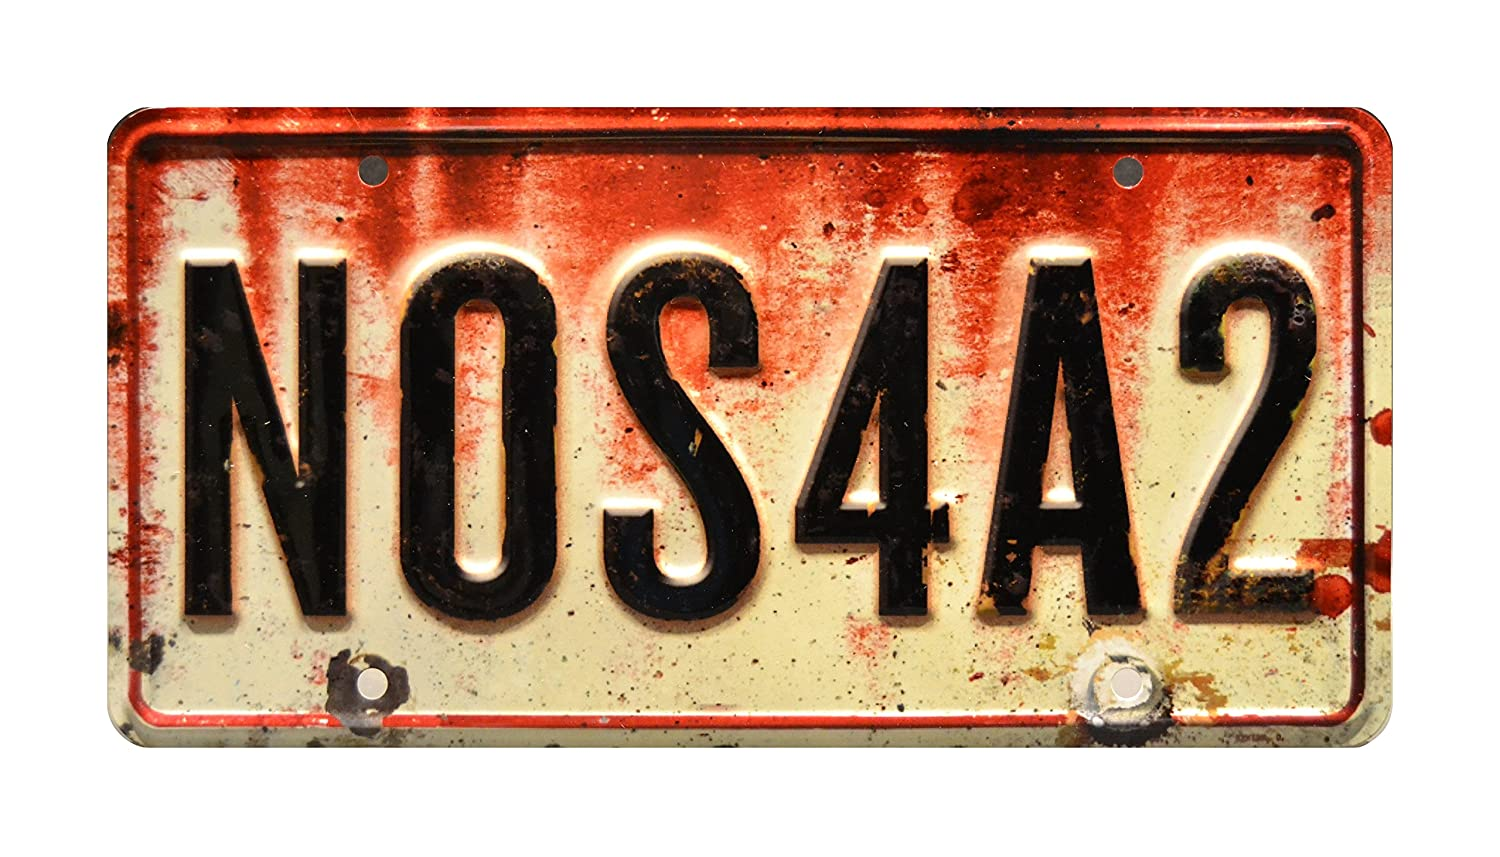 Celebrity Machines Joe Hill Stephen King NOS4A2 Metal Stamped Vanity Prop License Plate Charles Manx/'s Wraith